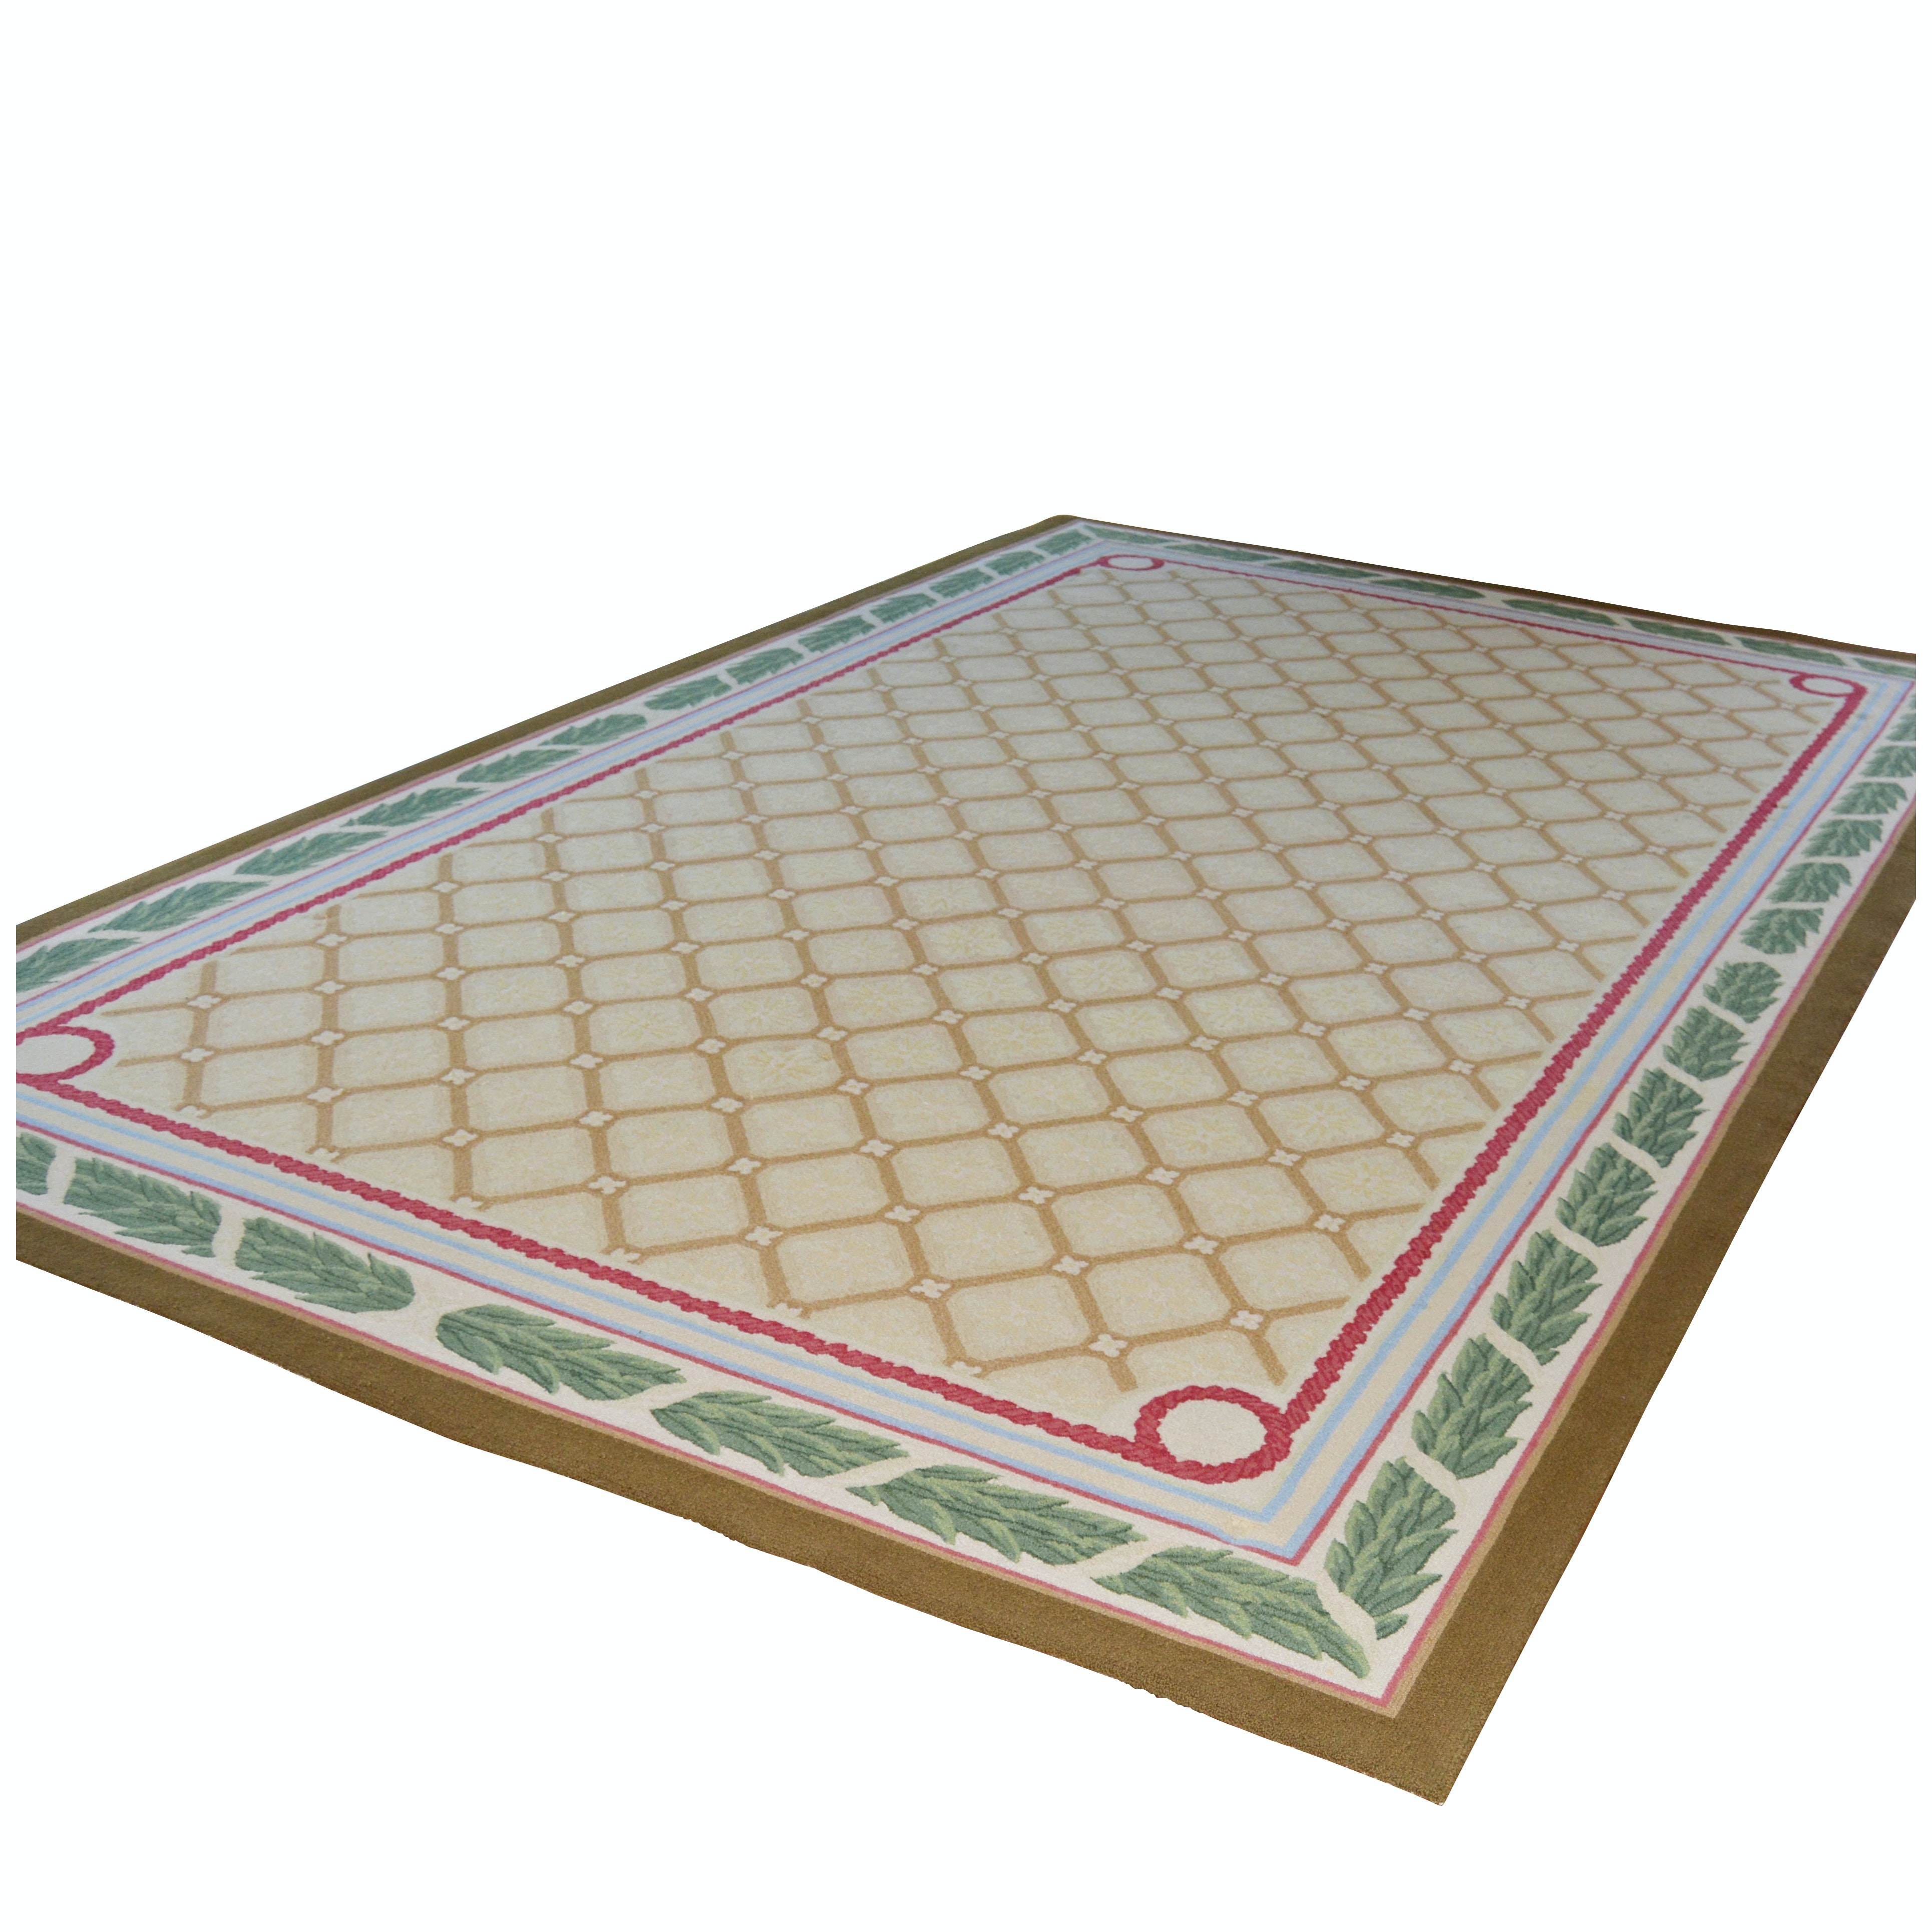 Tufted French Style Wool Palace Sized Rug